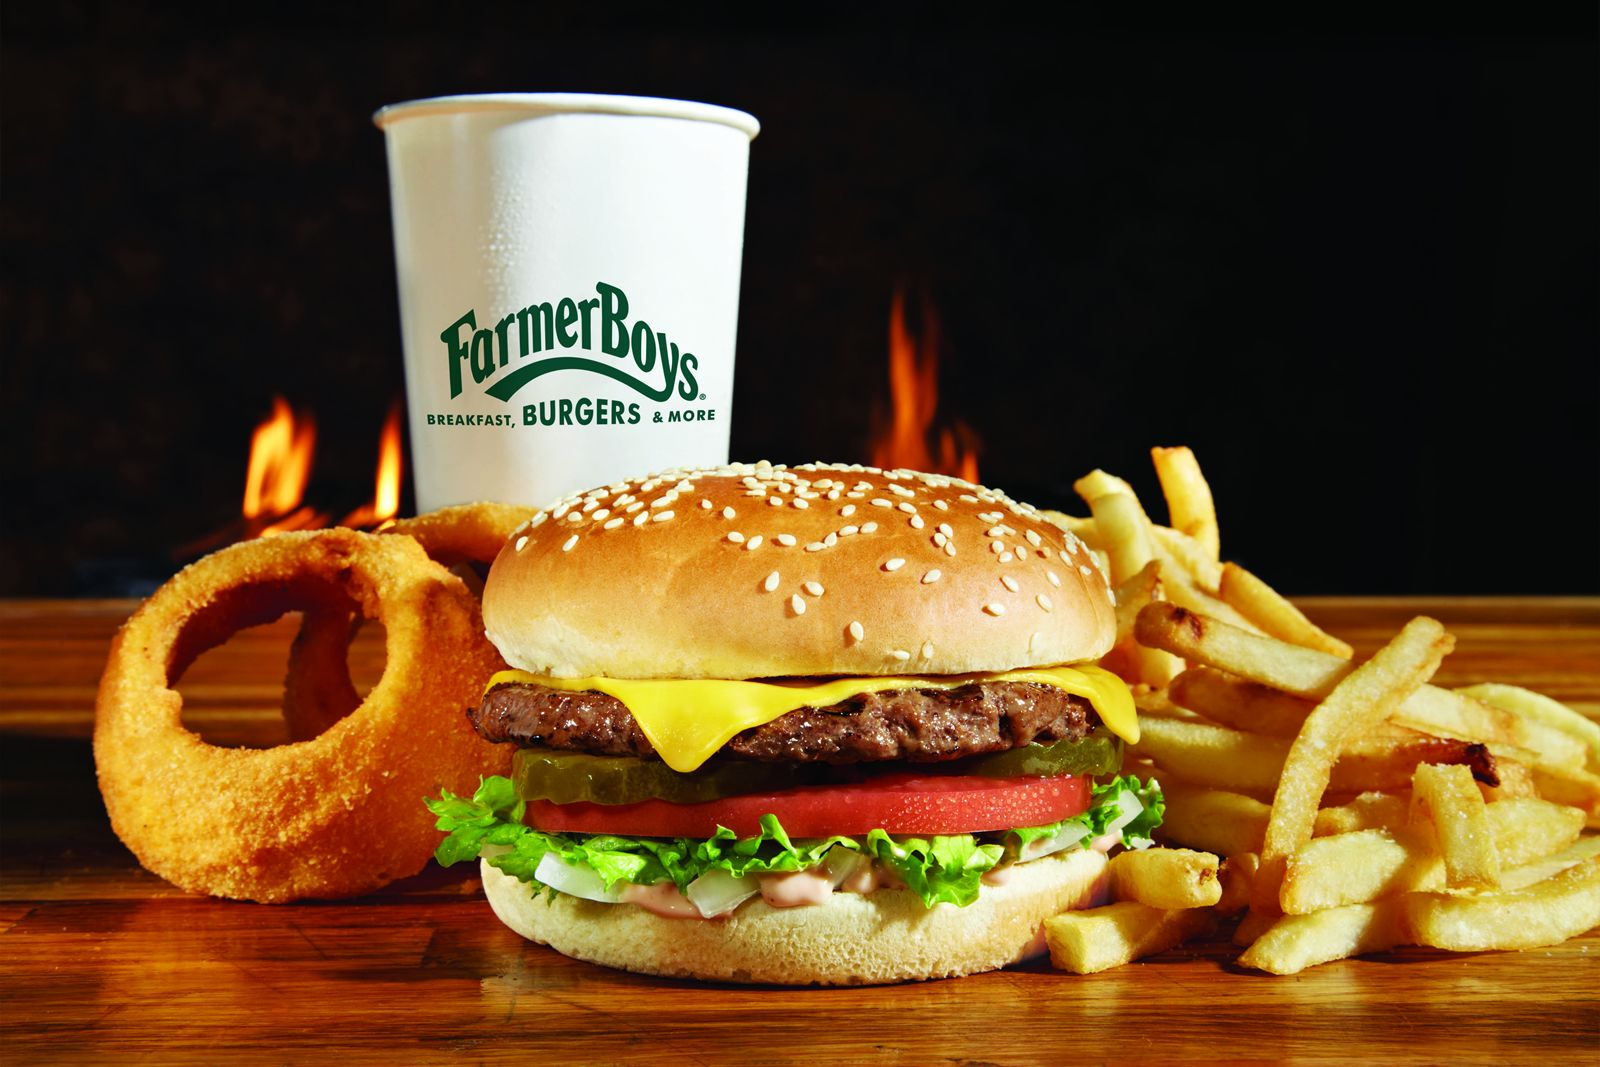 Farmer Boys, the farm-fresh fast casual burger concept, will celebrate the Grand Opening of its tenth Orange County restaurant in Irvine (17380 Red Hill Avenue) from Tuesday, October 16 - Sunday, October 21 with various menu specials, a prize wheel, and the chance to win free Farmer Boys food for one year.